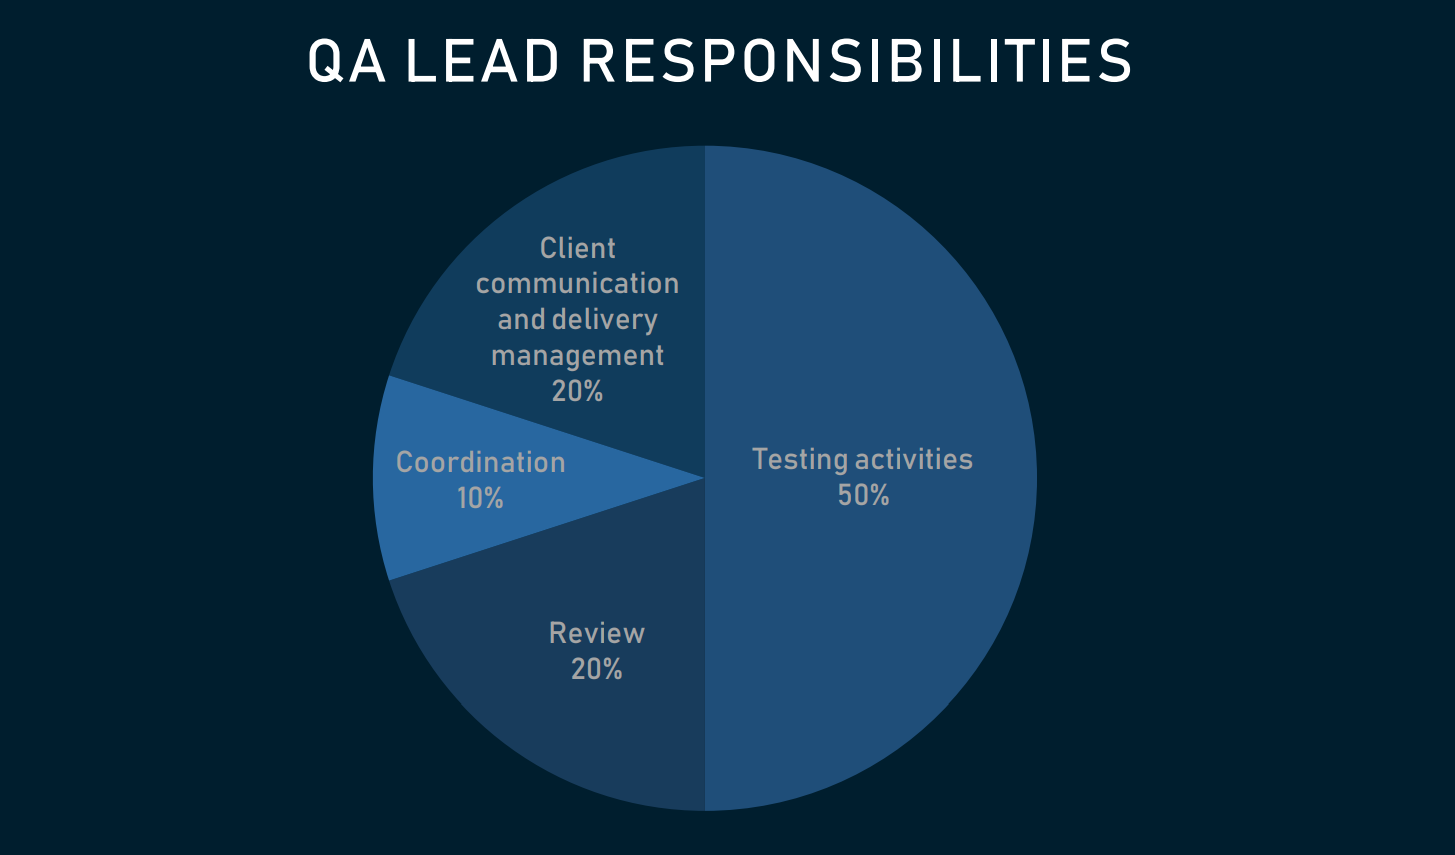 QA Engineering Roles: Responsibilities, Skills, and Tools